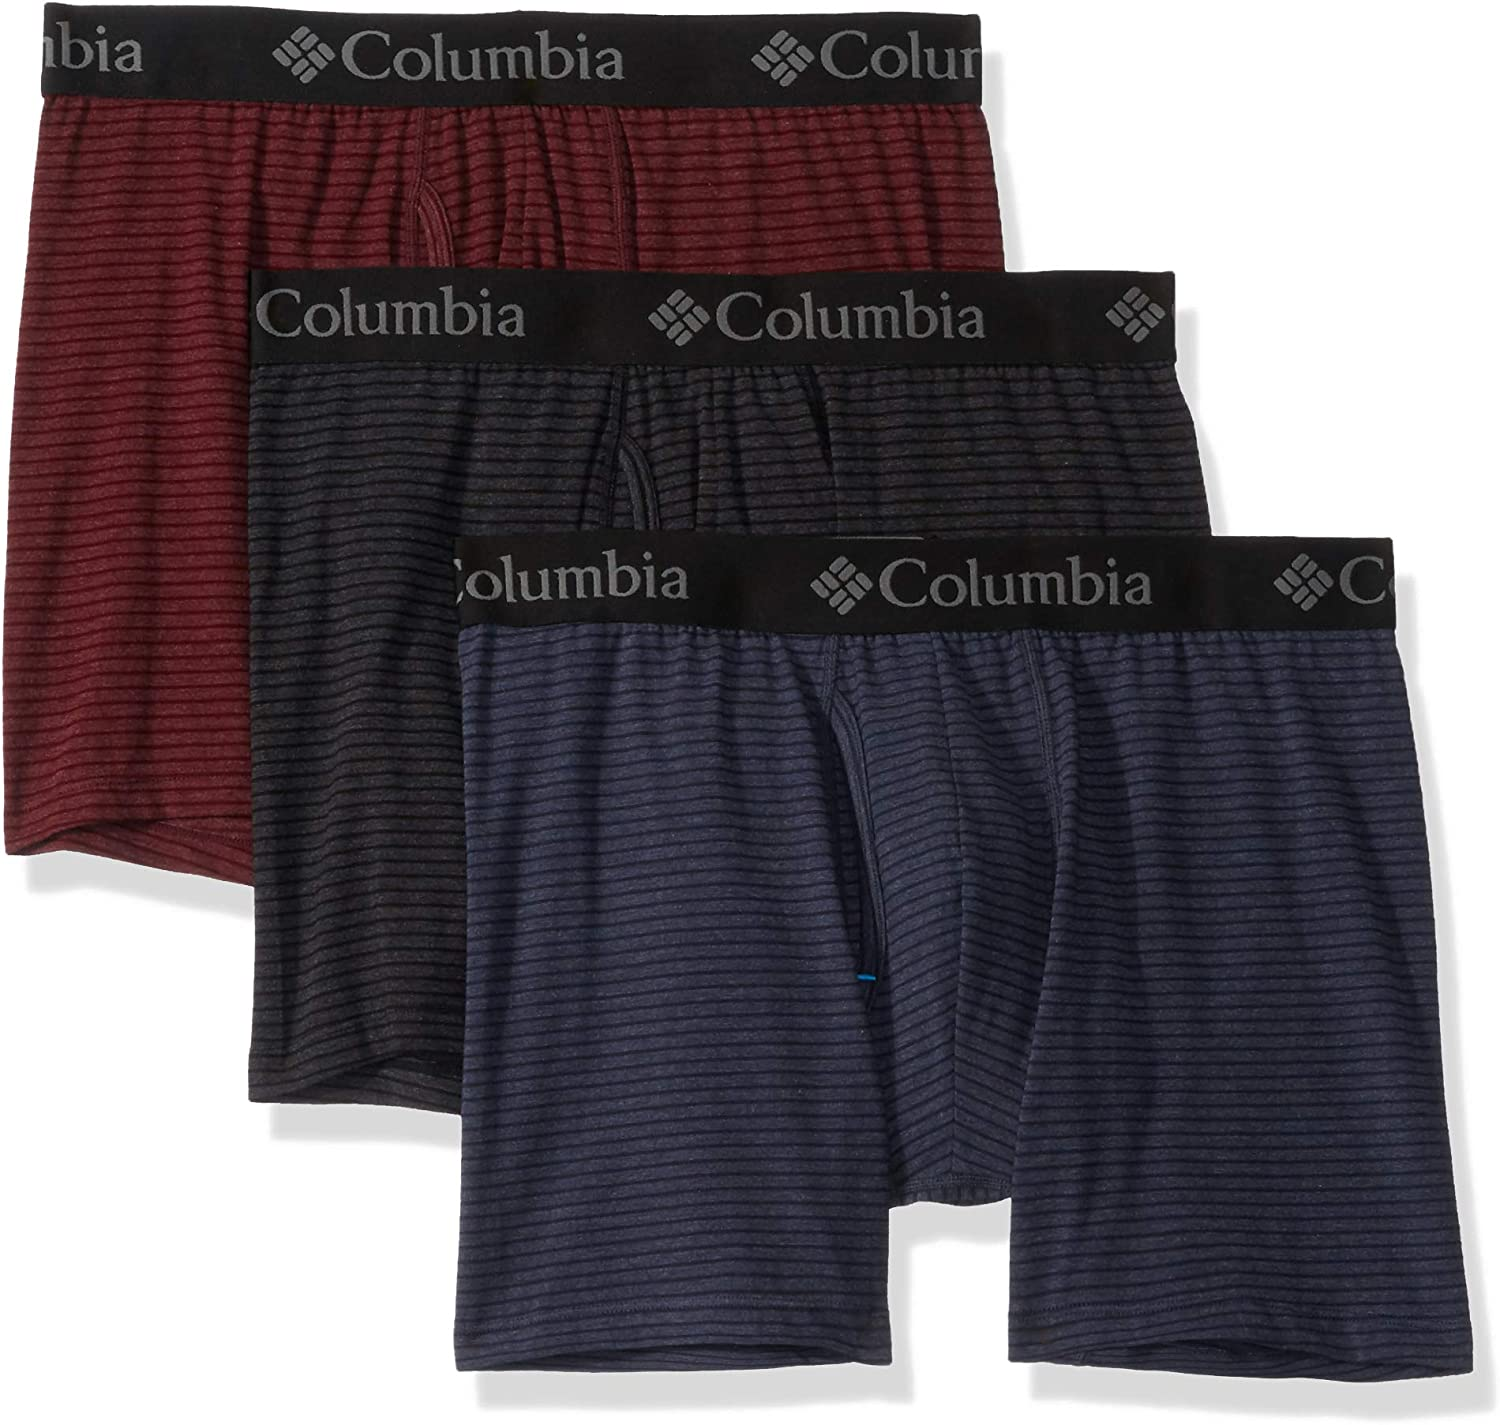 Columbia Men's Performance Cotton Stretch Boxer Brief - 3 pack